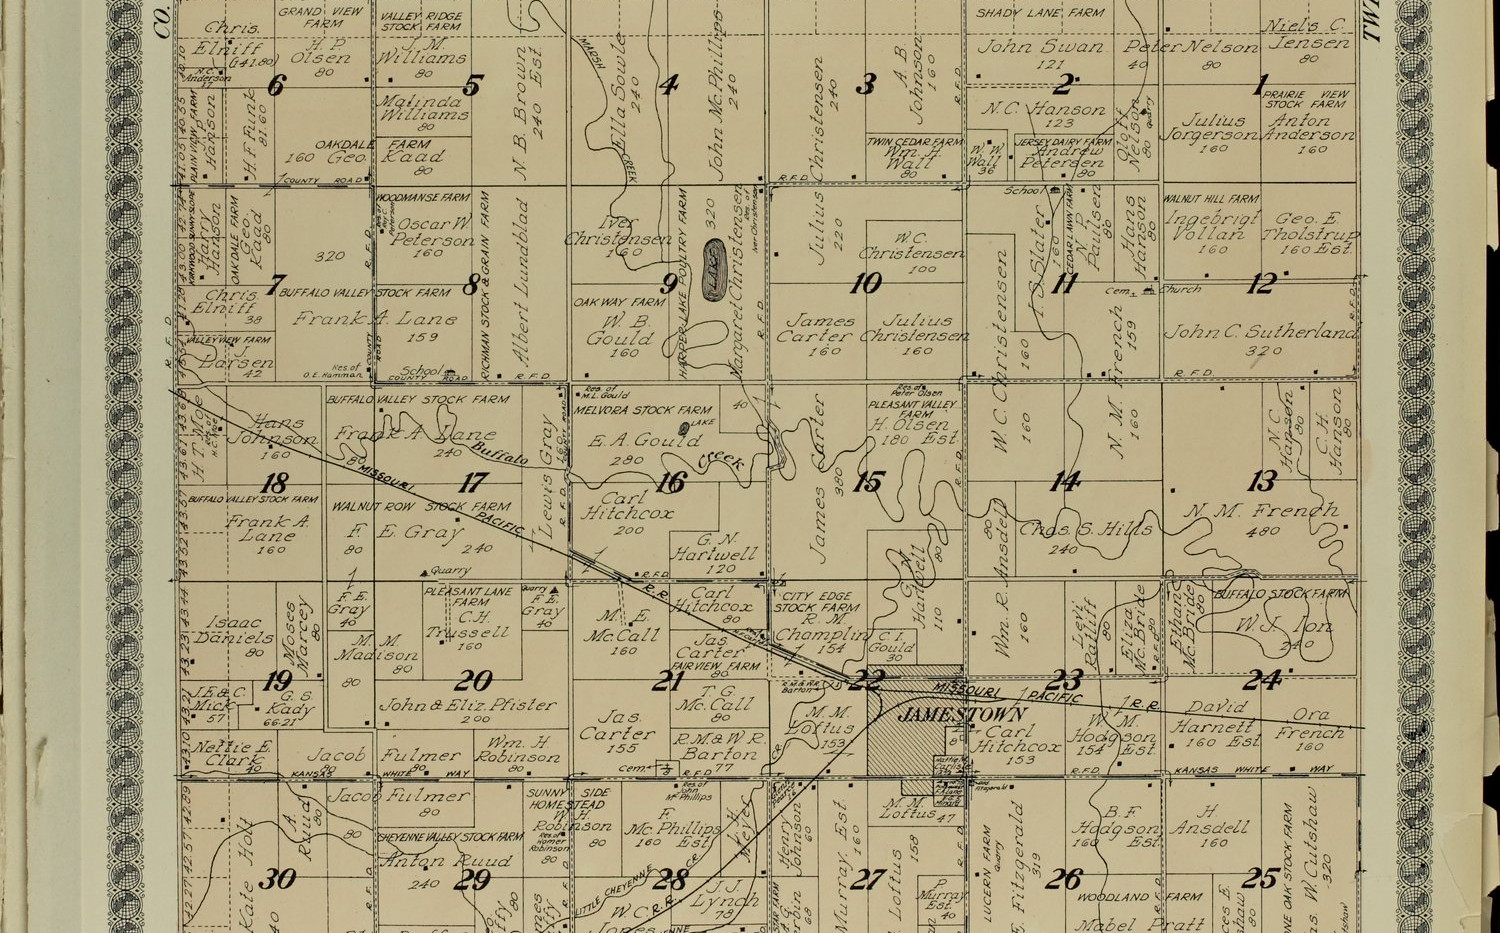 2: Grant Township